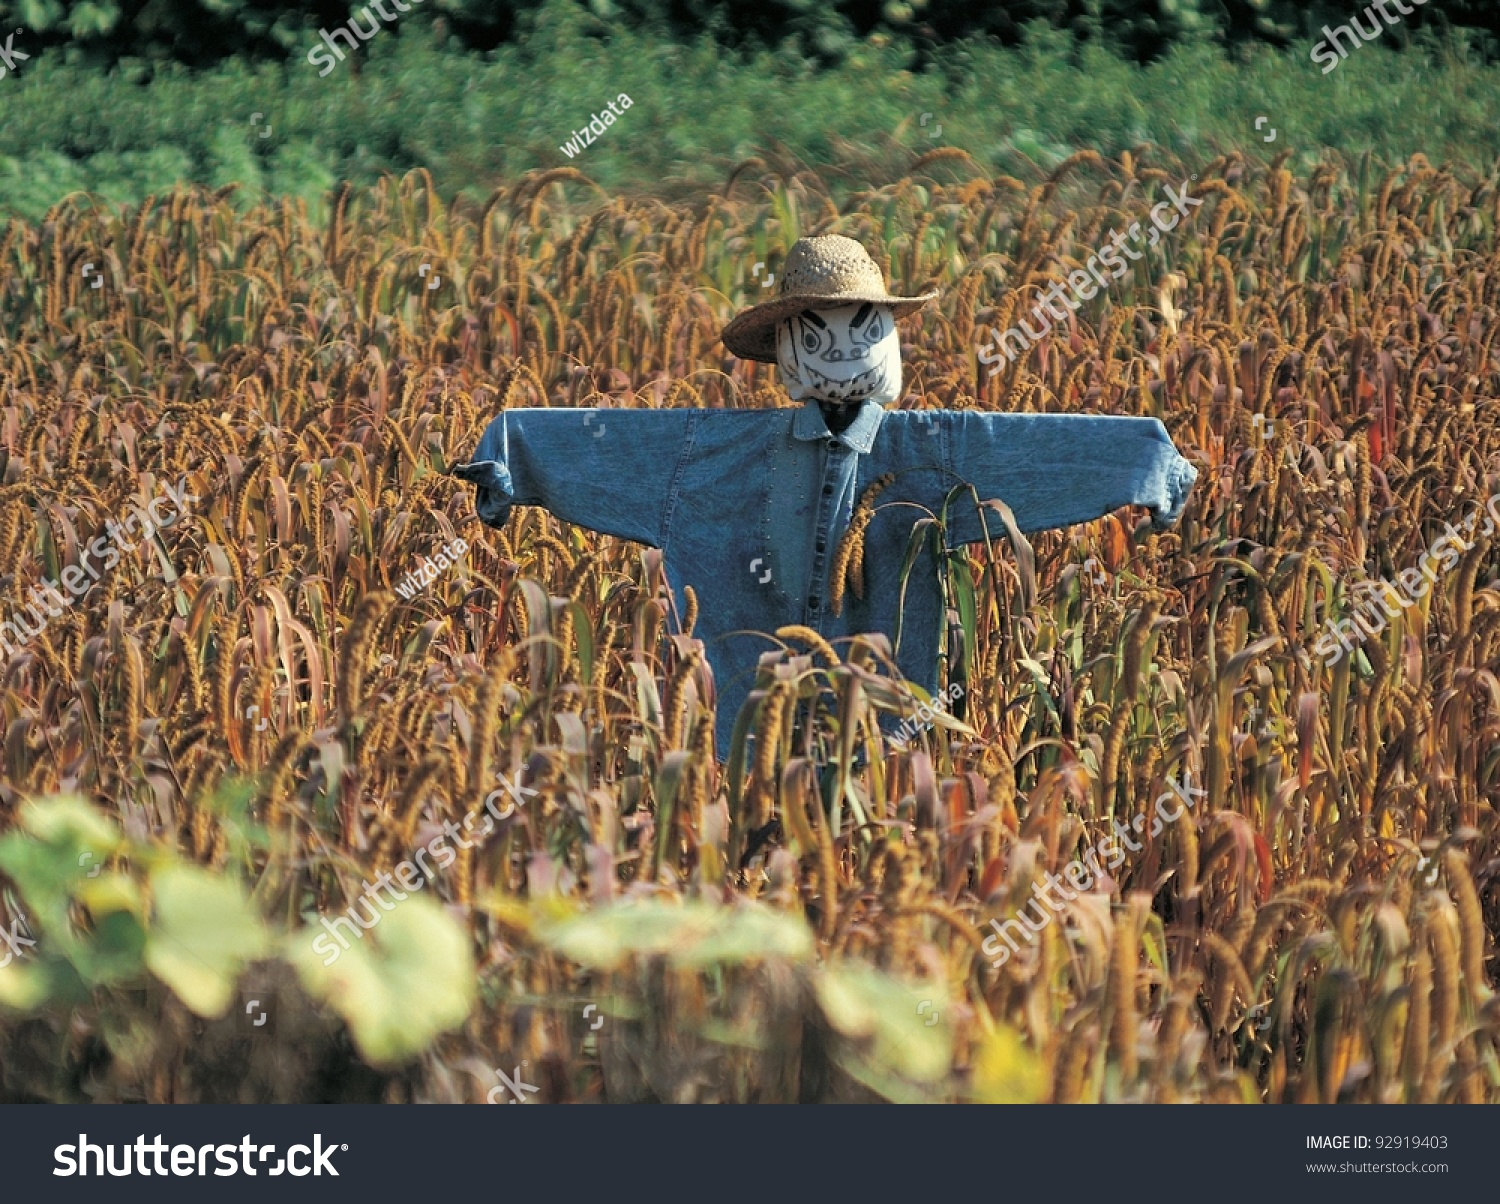 Fall Scarecrow Wallpaper Photo Of Scarecrow In Corn Field On A Sunny Day 92919403